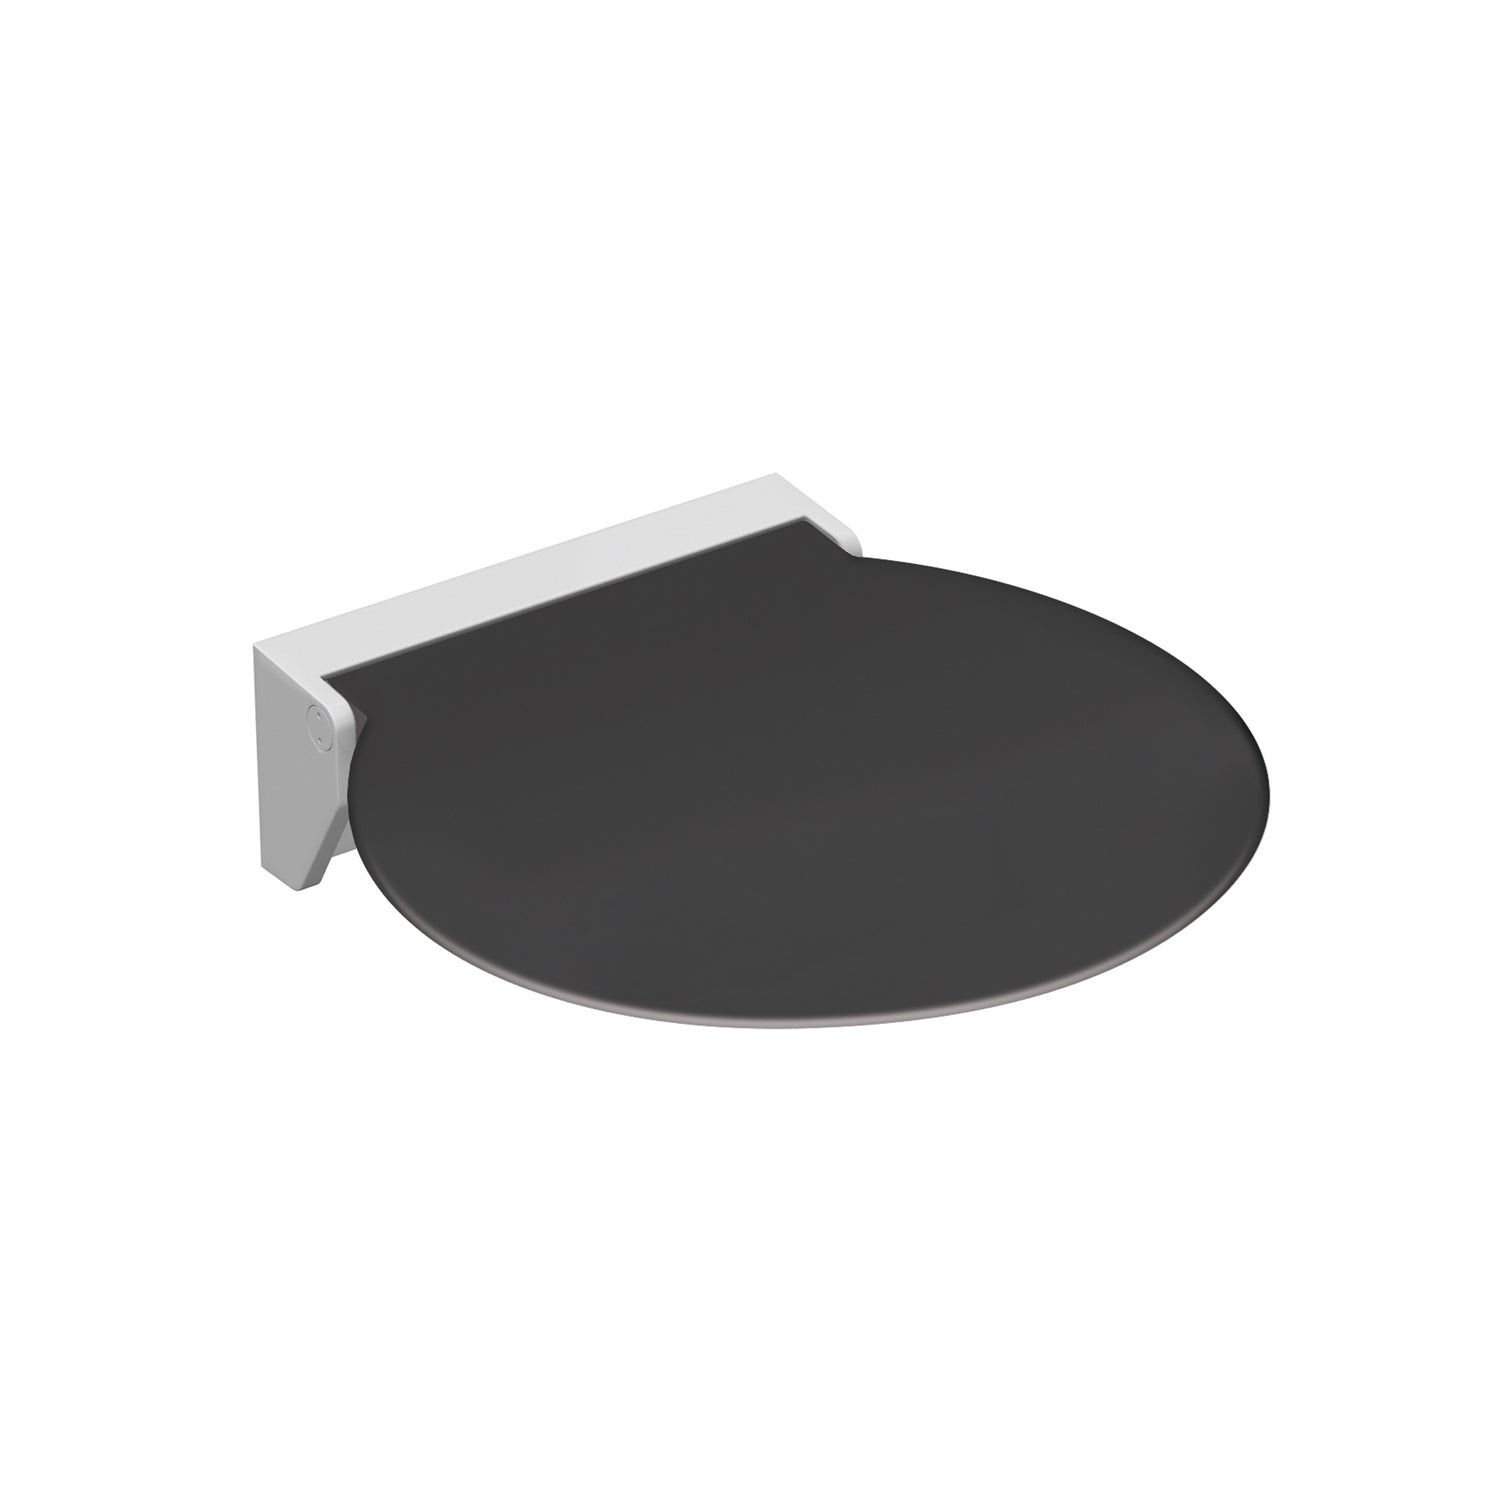 Circula Shower Seat with an anthracite grey seat and white bracket on a white background